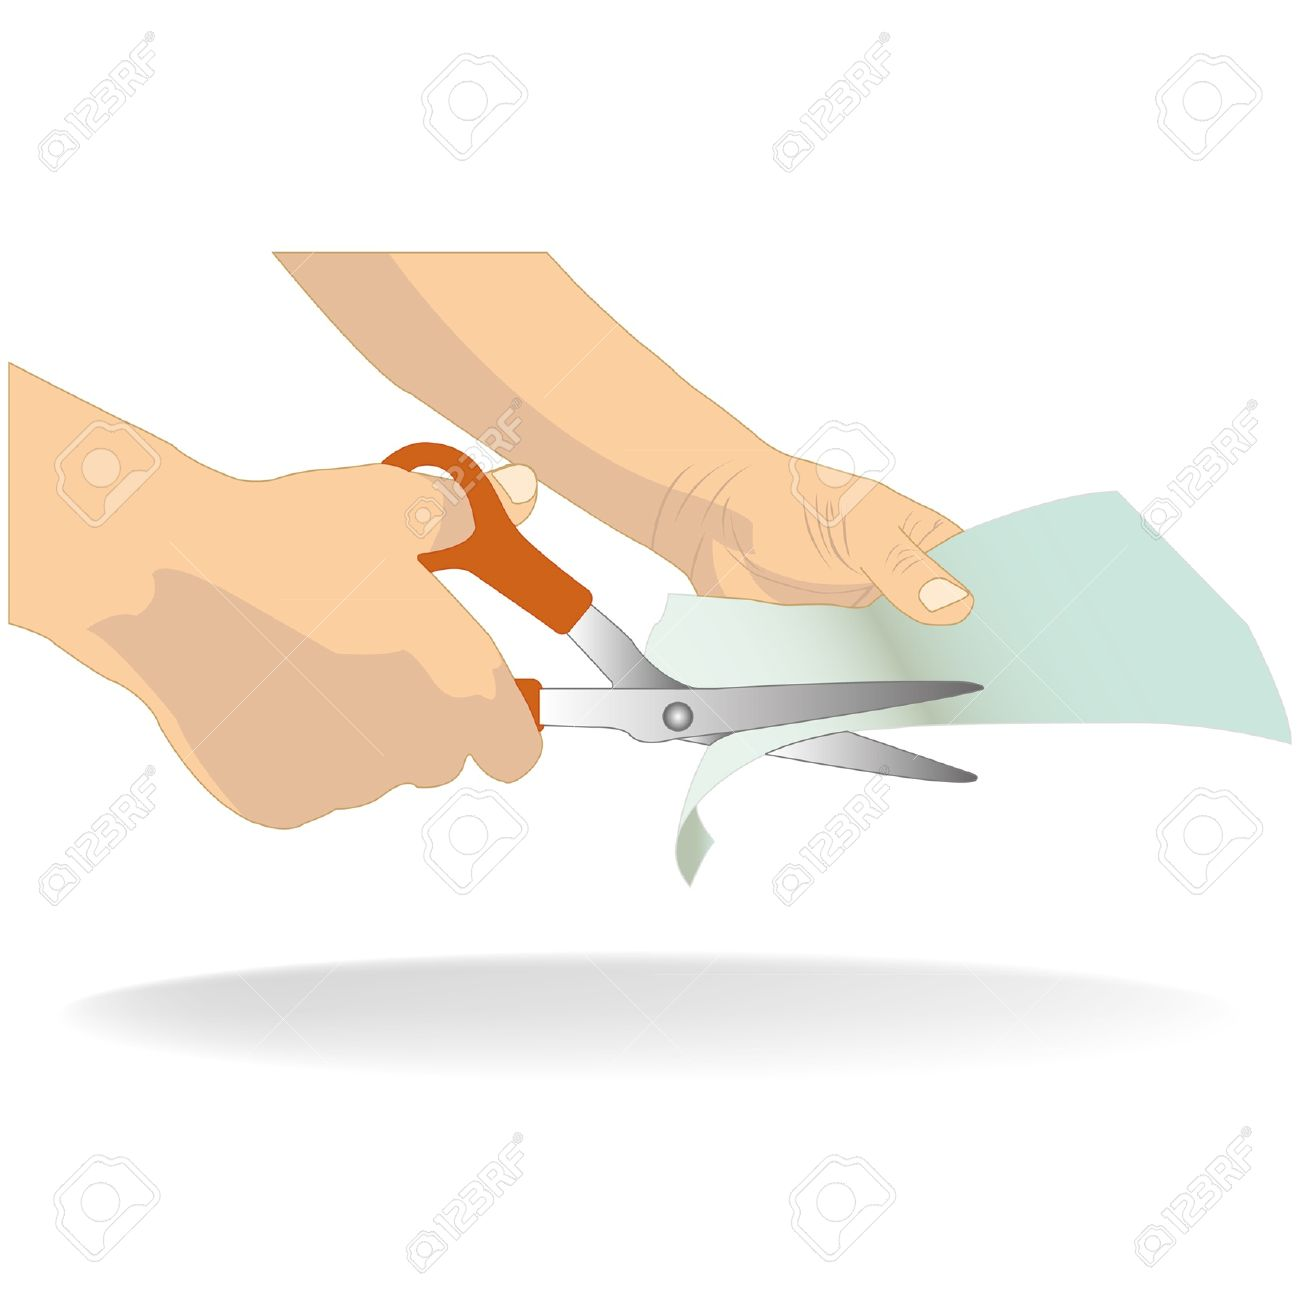 hand holding scissors cutting white paper Stock Vector - 17711040